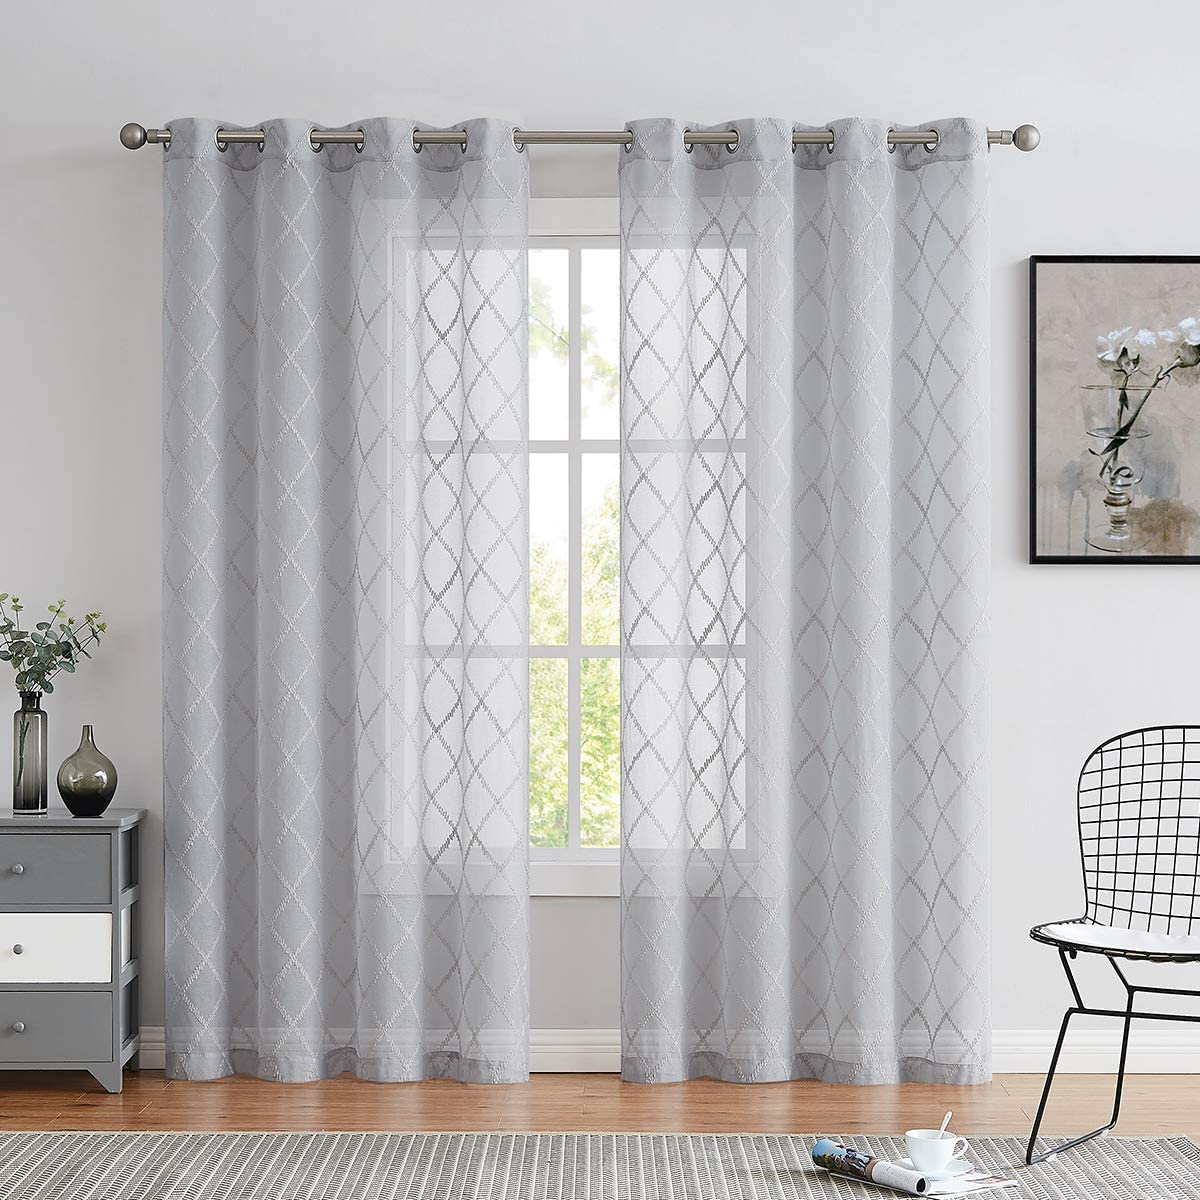 Variegatex Gray Sheer Curtain Panels 95 Inches Long for Living Room, Diamond Pattern Embroidery Voile Window Drapes with Grommets for Bedroom, 54×95, Set of 2